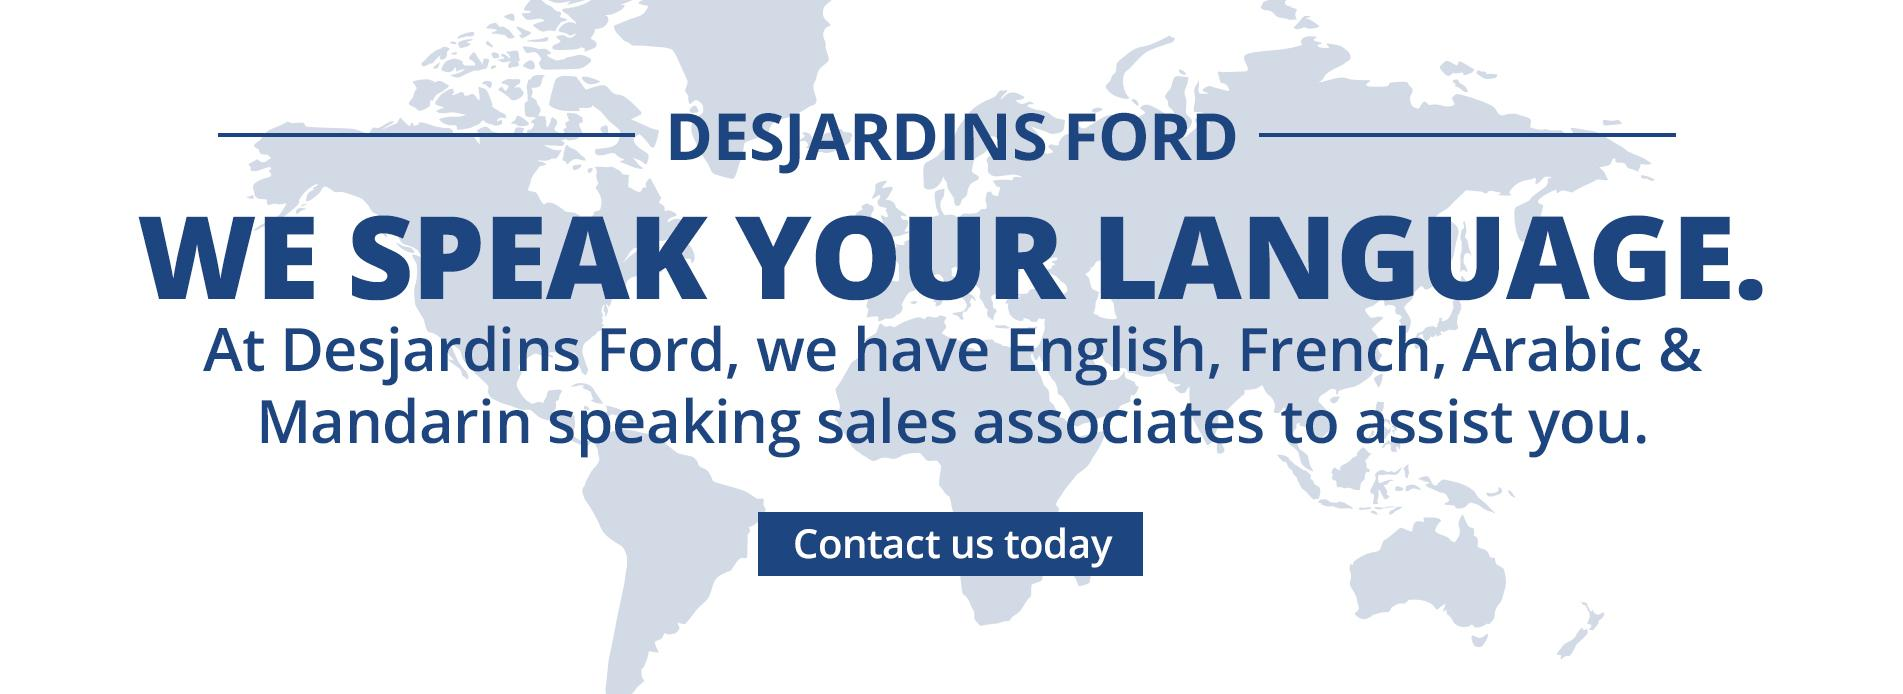 We speak your language Desjardins Ford